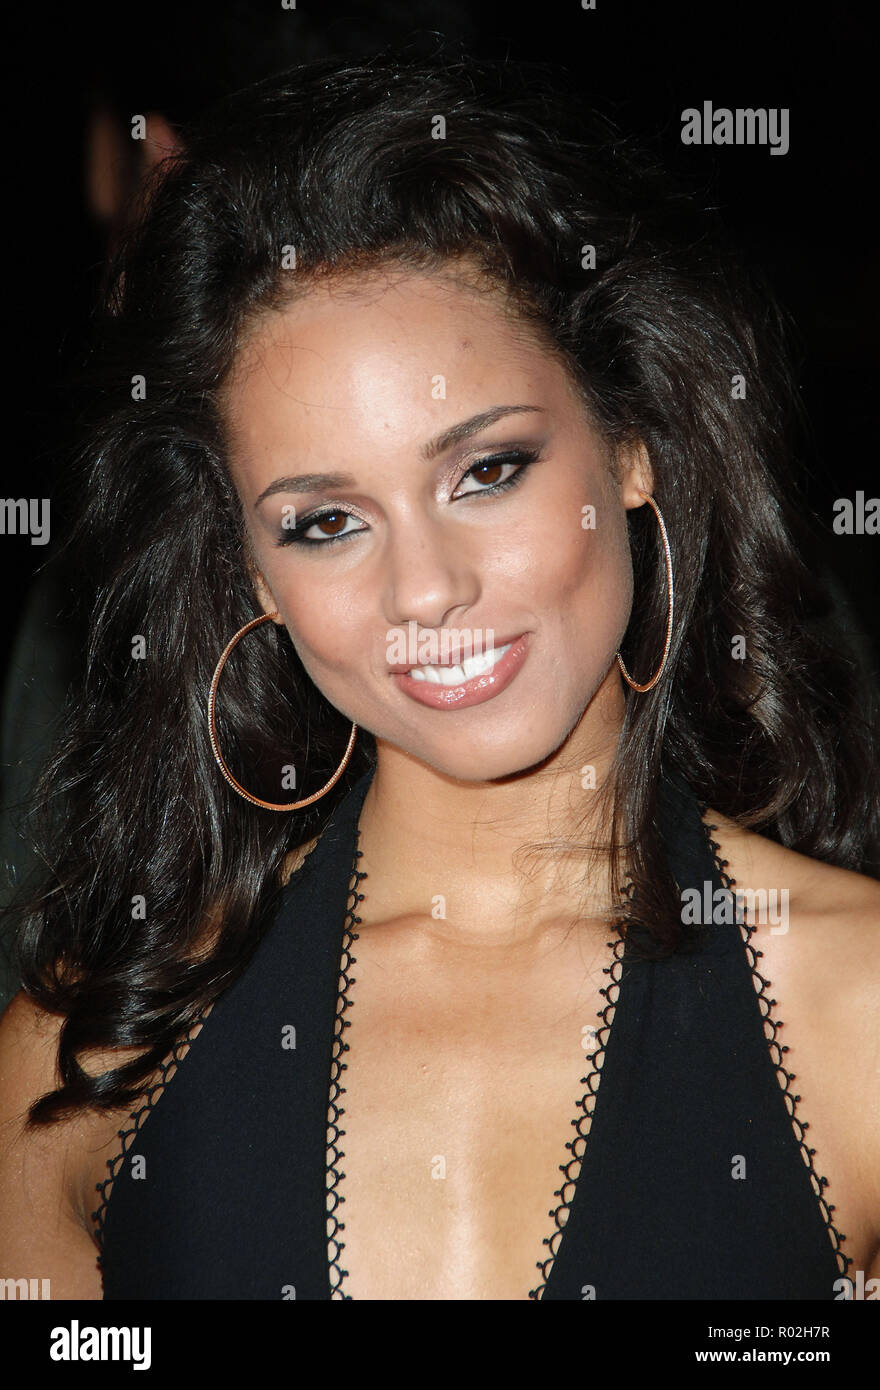 Alicia Keys arriving at the Smokin' Aces at the Chinese Theatre In Los Angeles. January 18, 2007.  eye contact smile portrait headshot black dressKeysAlicia_006 Red Carpet Event, Vertical, USA, Film Industry, Celebrities,  Photography, Bestof, Arts Culture and Entertainment, Topix Celebrities fashion /  Vertical, Best of, Event in Hollywood Life - California,  Red Carpet and backstage, USA, Film Industry, Celebrities,  movie celebrities, TV celebrities, Music celebrities, Photography, Bestof, Arts Culture and Entertainment,  Topix, headshot, vertical, one person,, from the year , 2007, inquiry - Stock Image